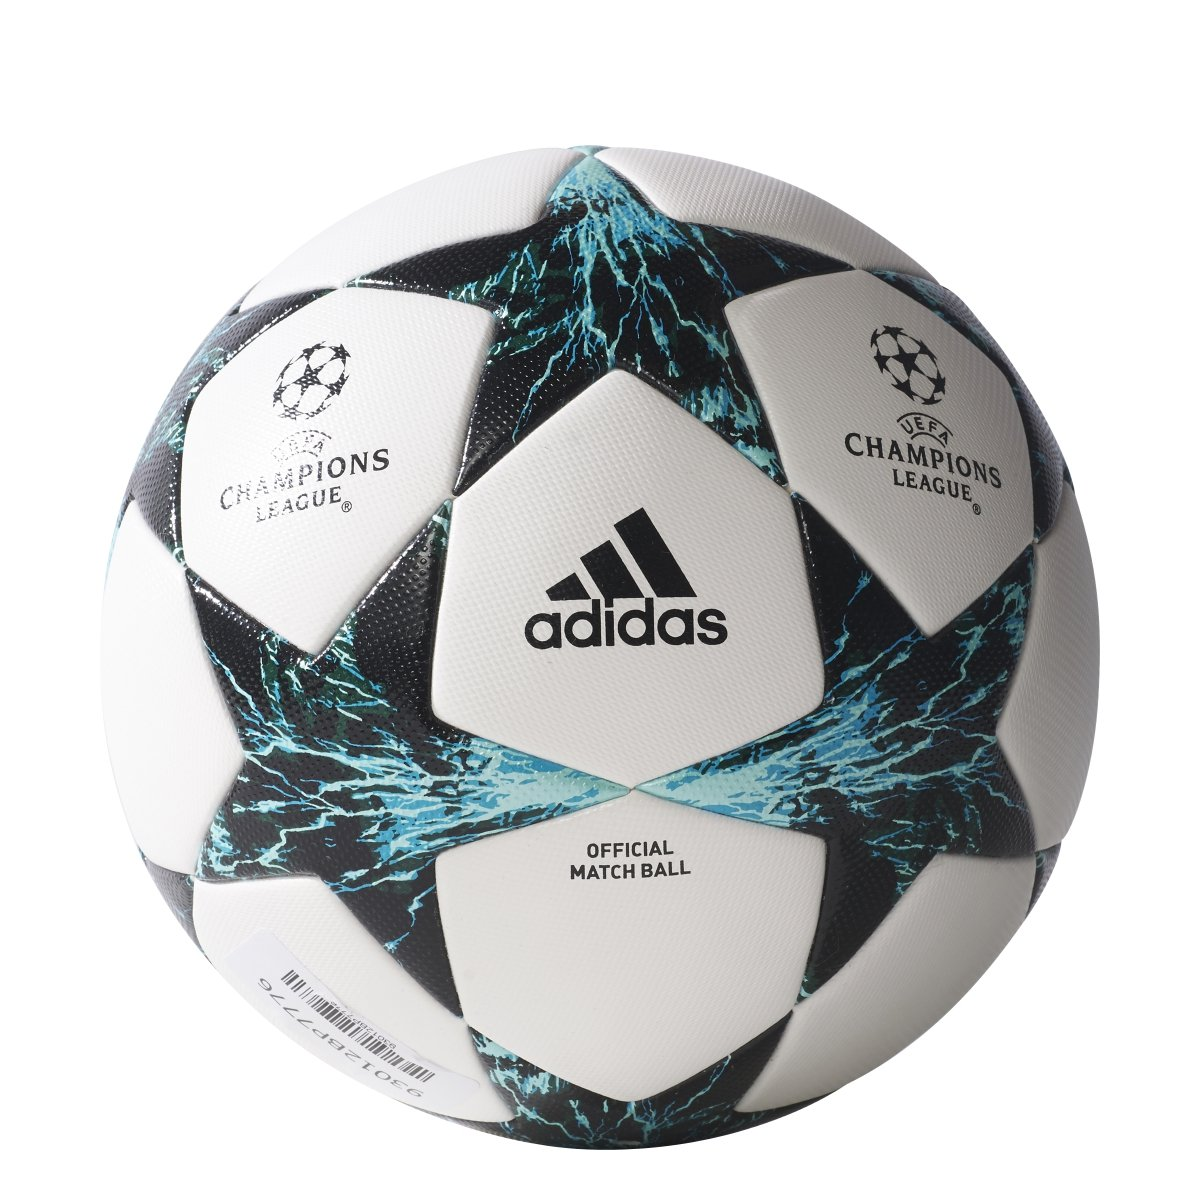 Adidas Finale 17 Omb Match Ball 5 White/Black